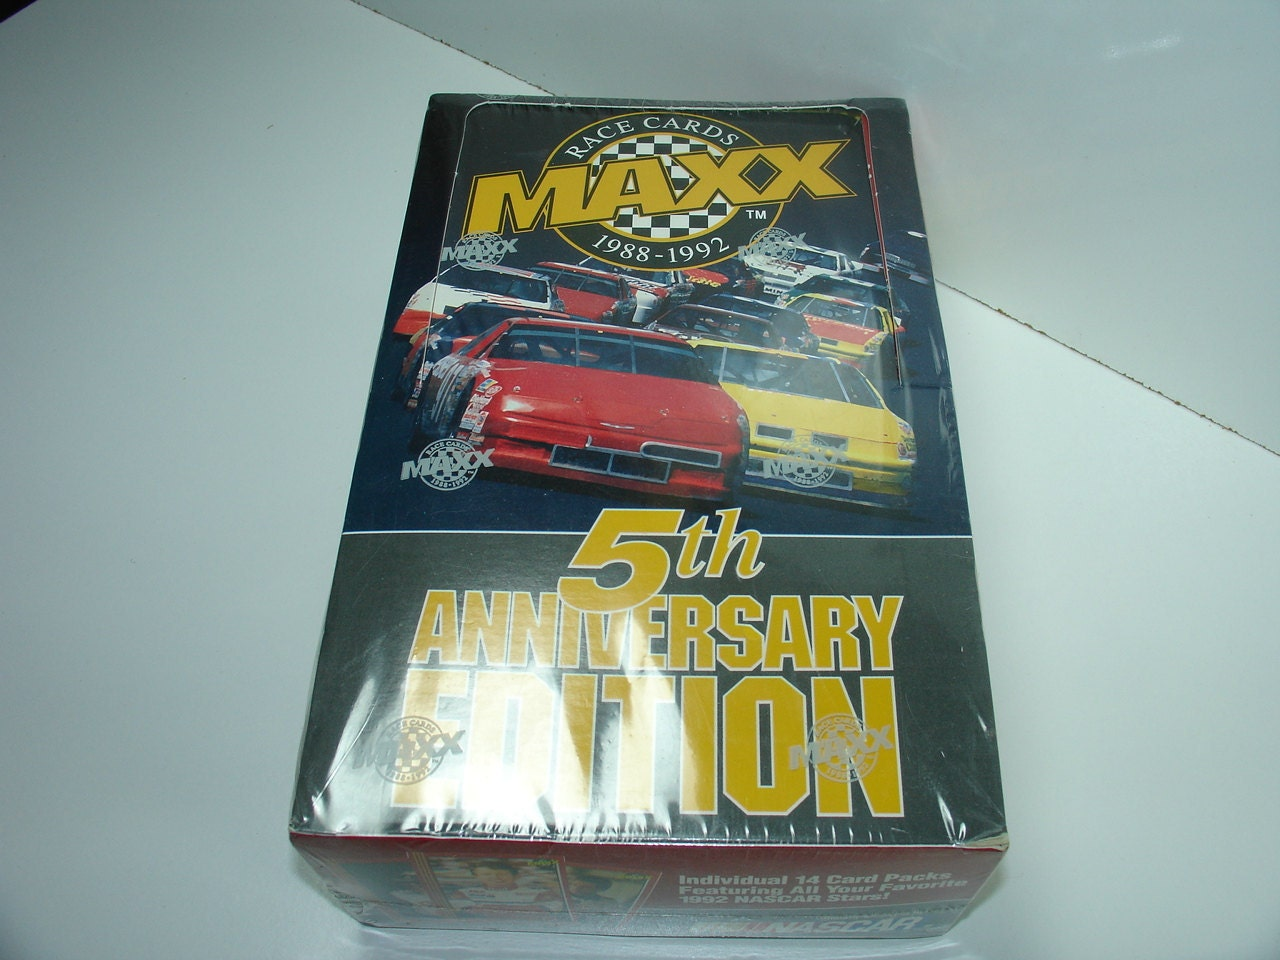 Nascar Maxx Race Cards 1988 To1992 Unopened By Morembwstuff